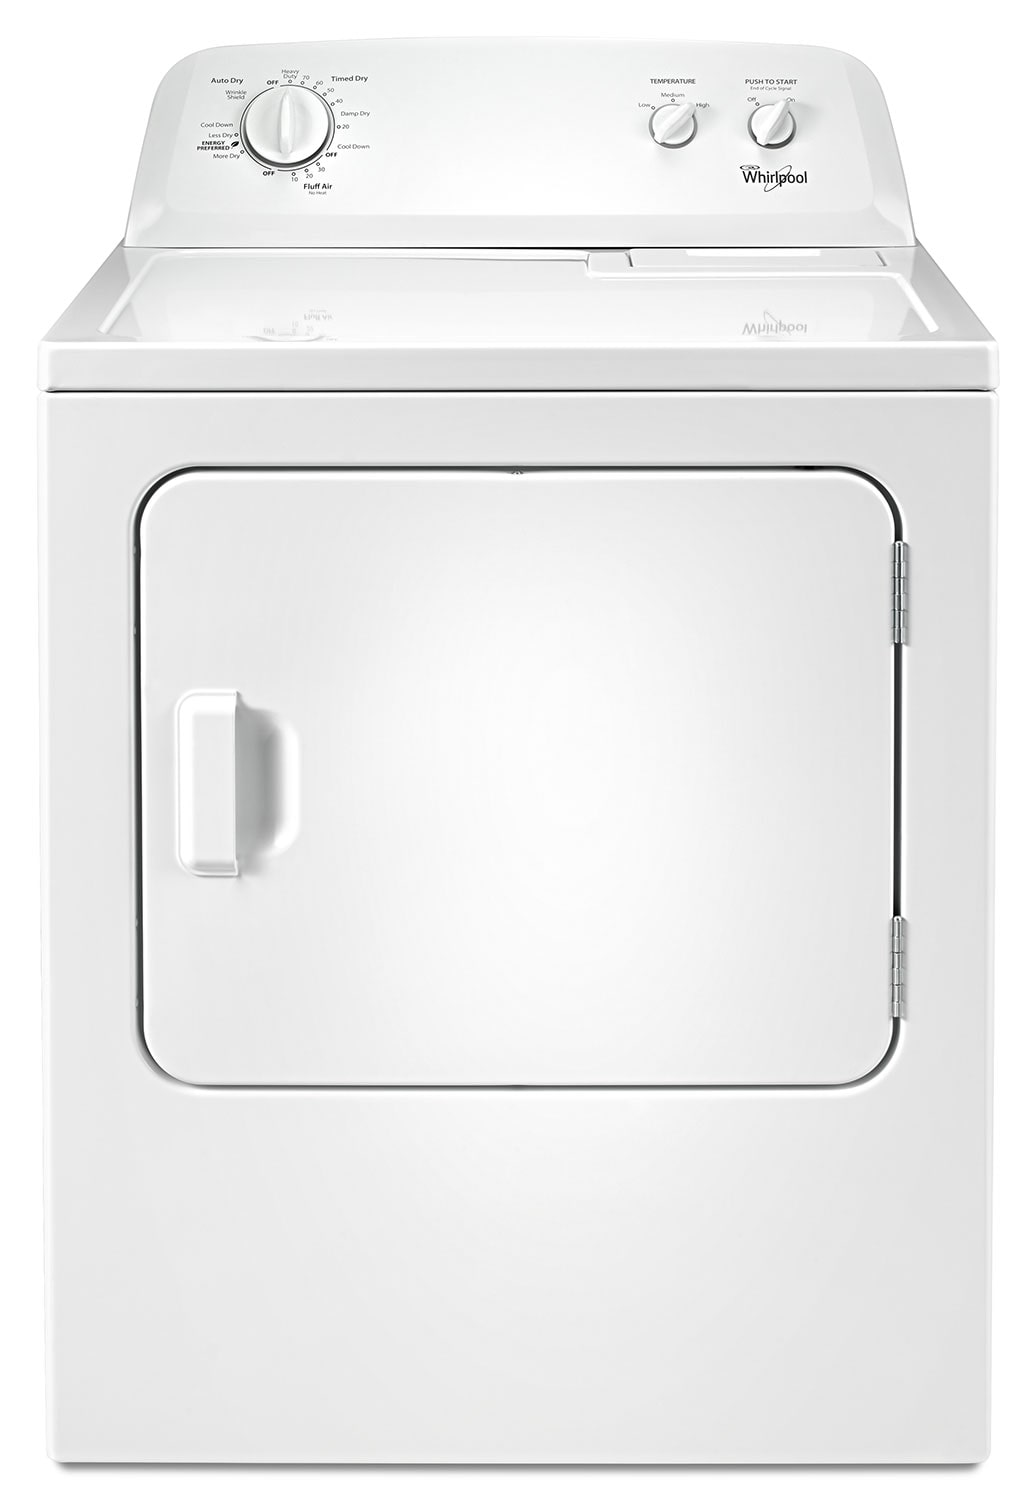 Washers and Dryers - Whirlpool 7.0 Cu. Ft. Gas Dryer – WGD4616FW